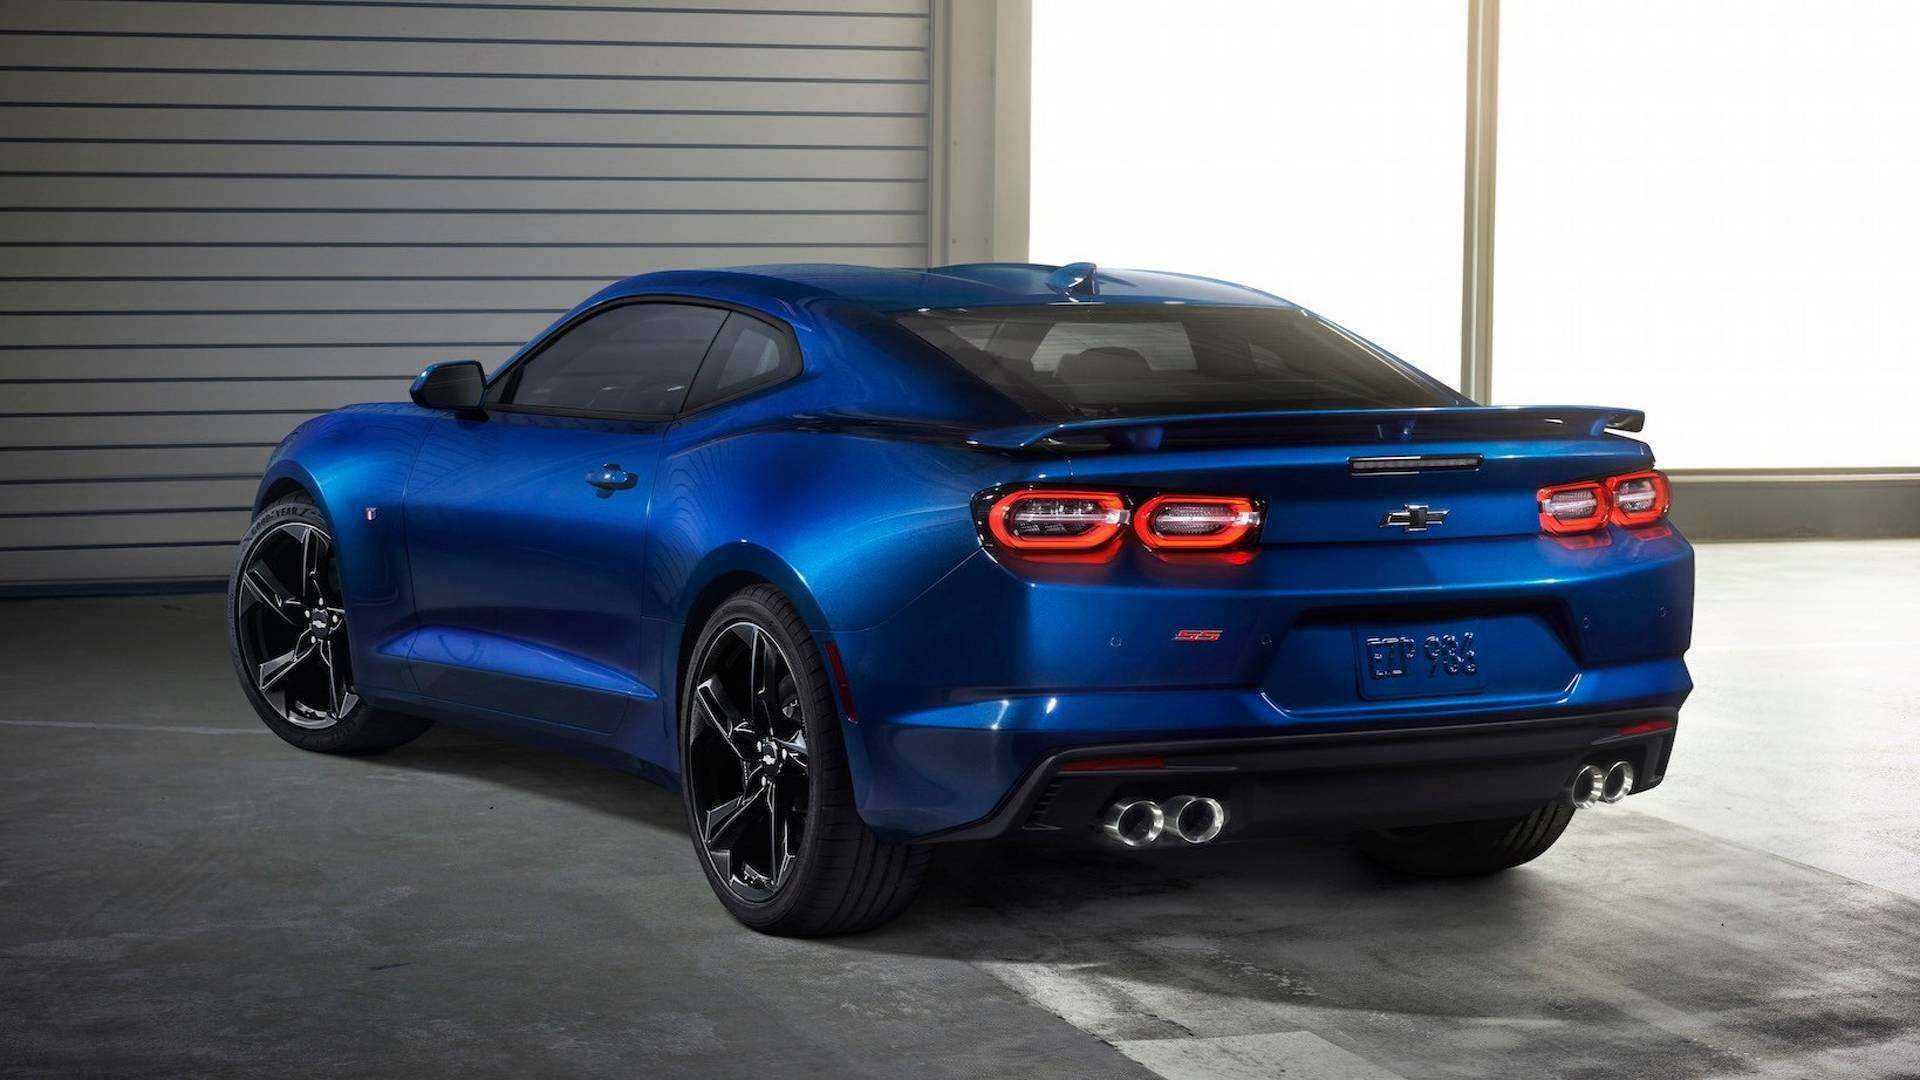 23 Gallery of 2020 Chevy Camaro Price with 2020 Chevy Camaro